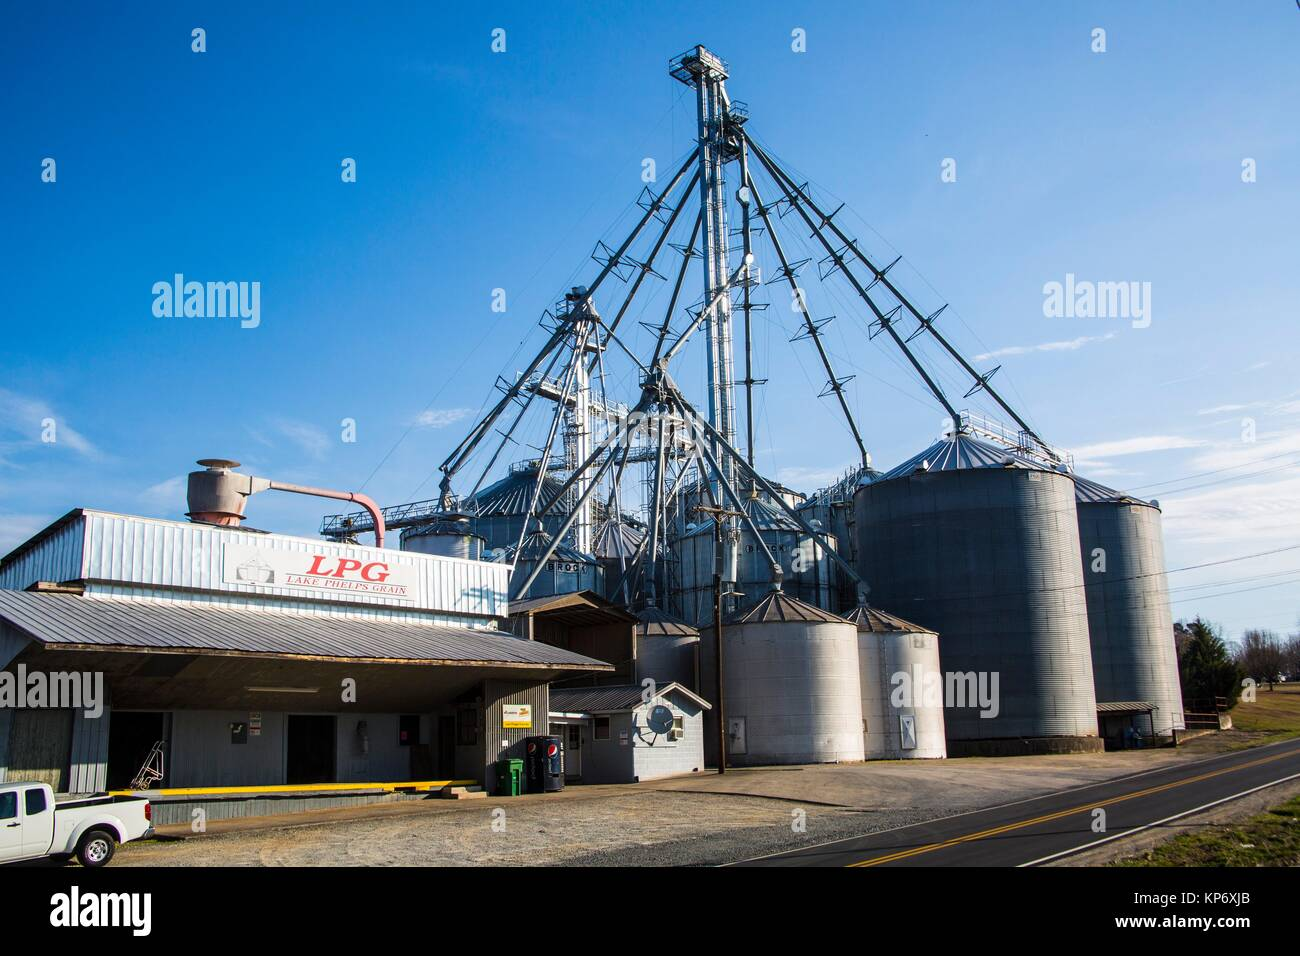 Huge silo in a farm by the back roads in the USA. - Stock Image